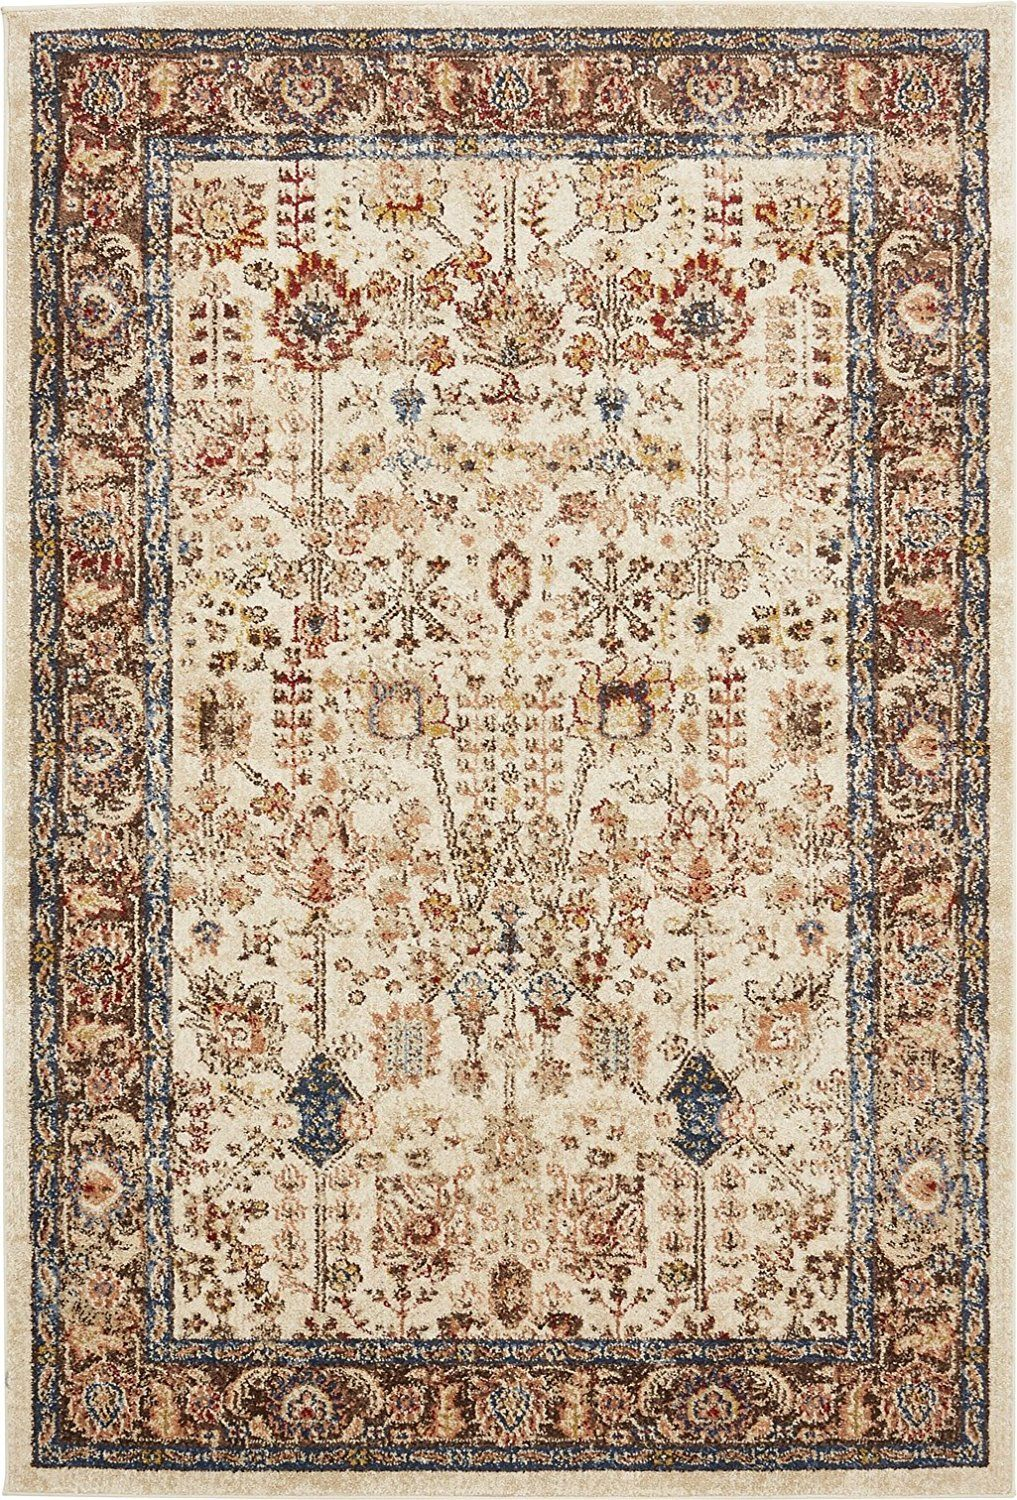 Kitchen Floor Rugs Impressive Amazon Traditional Persian Rugs Vintage Design Inspired 5073 12